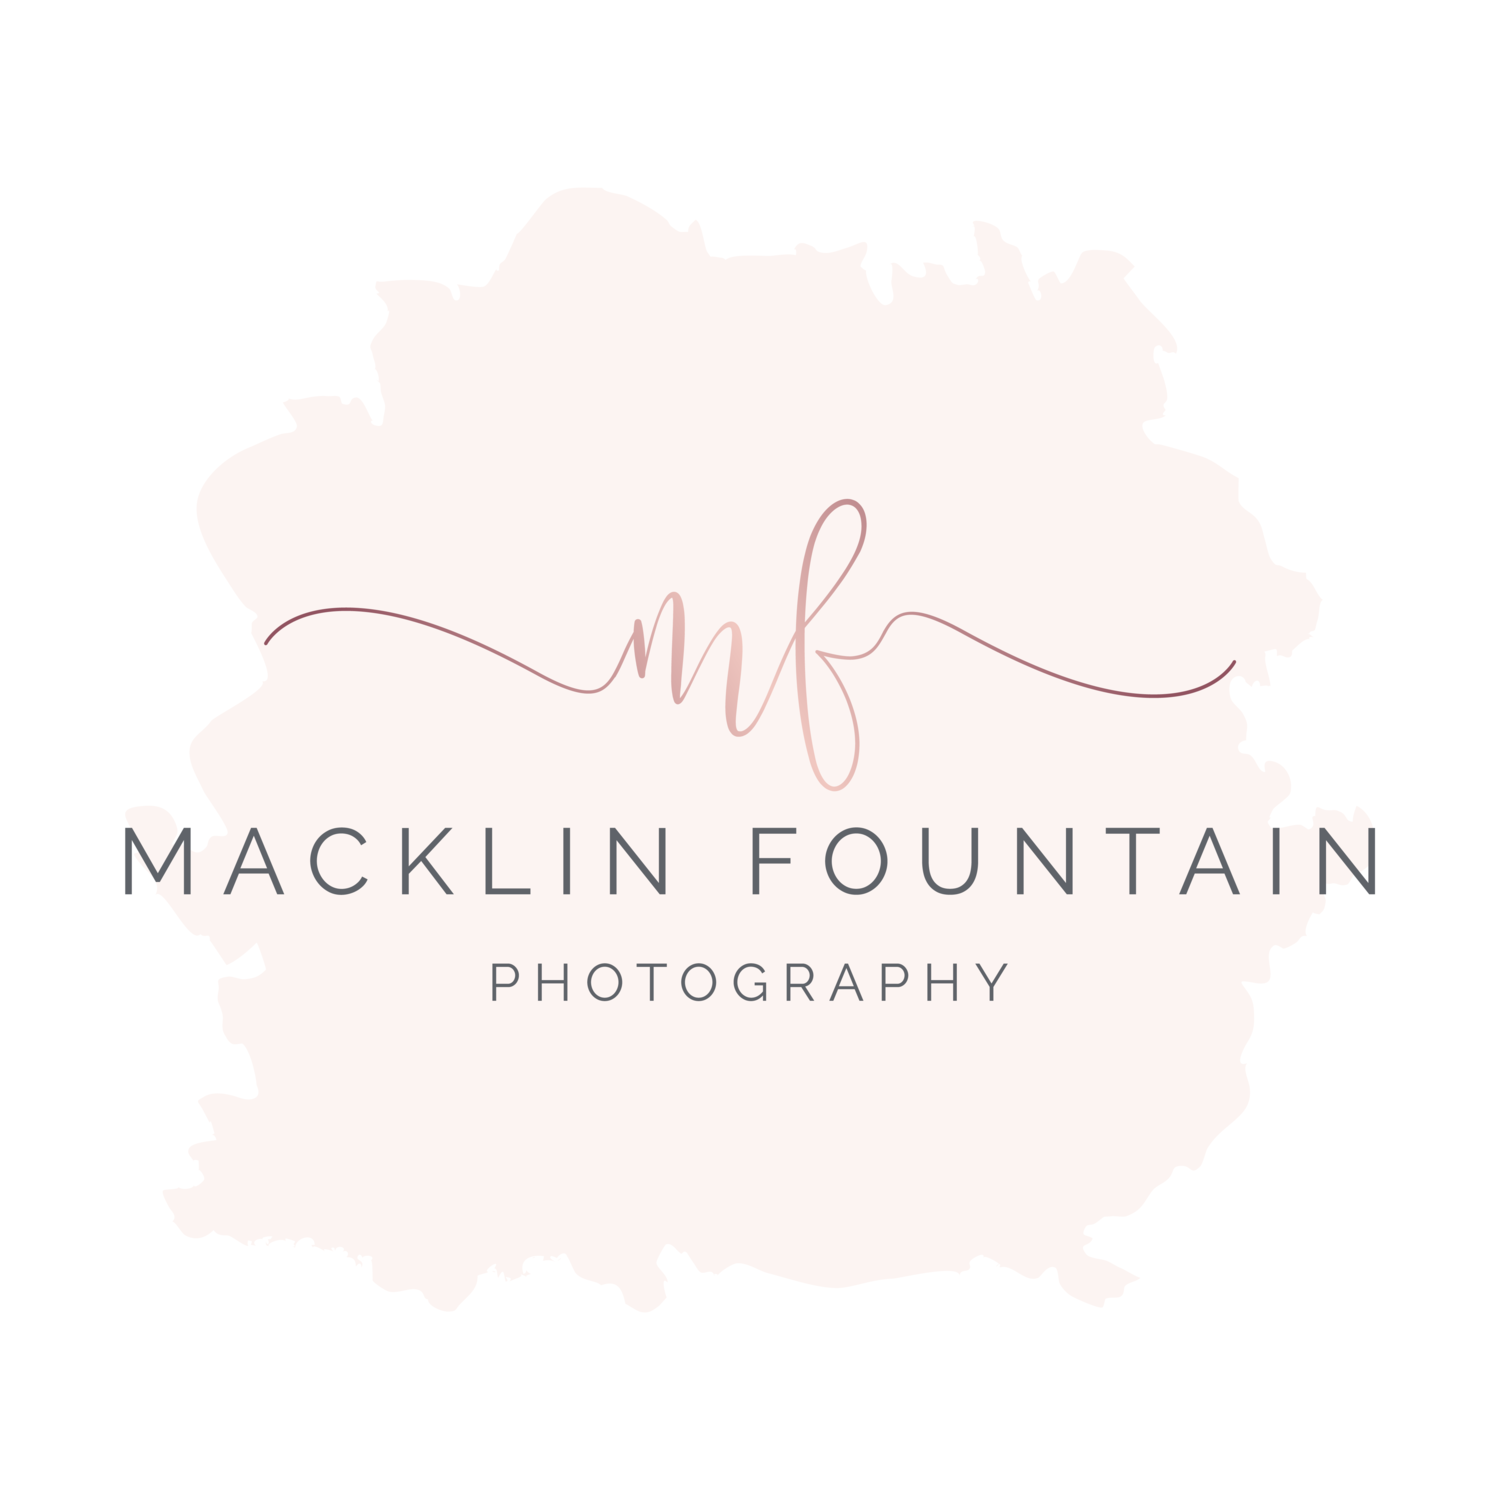 Macklin Fountain Photography